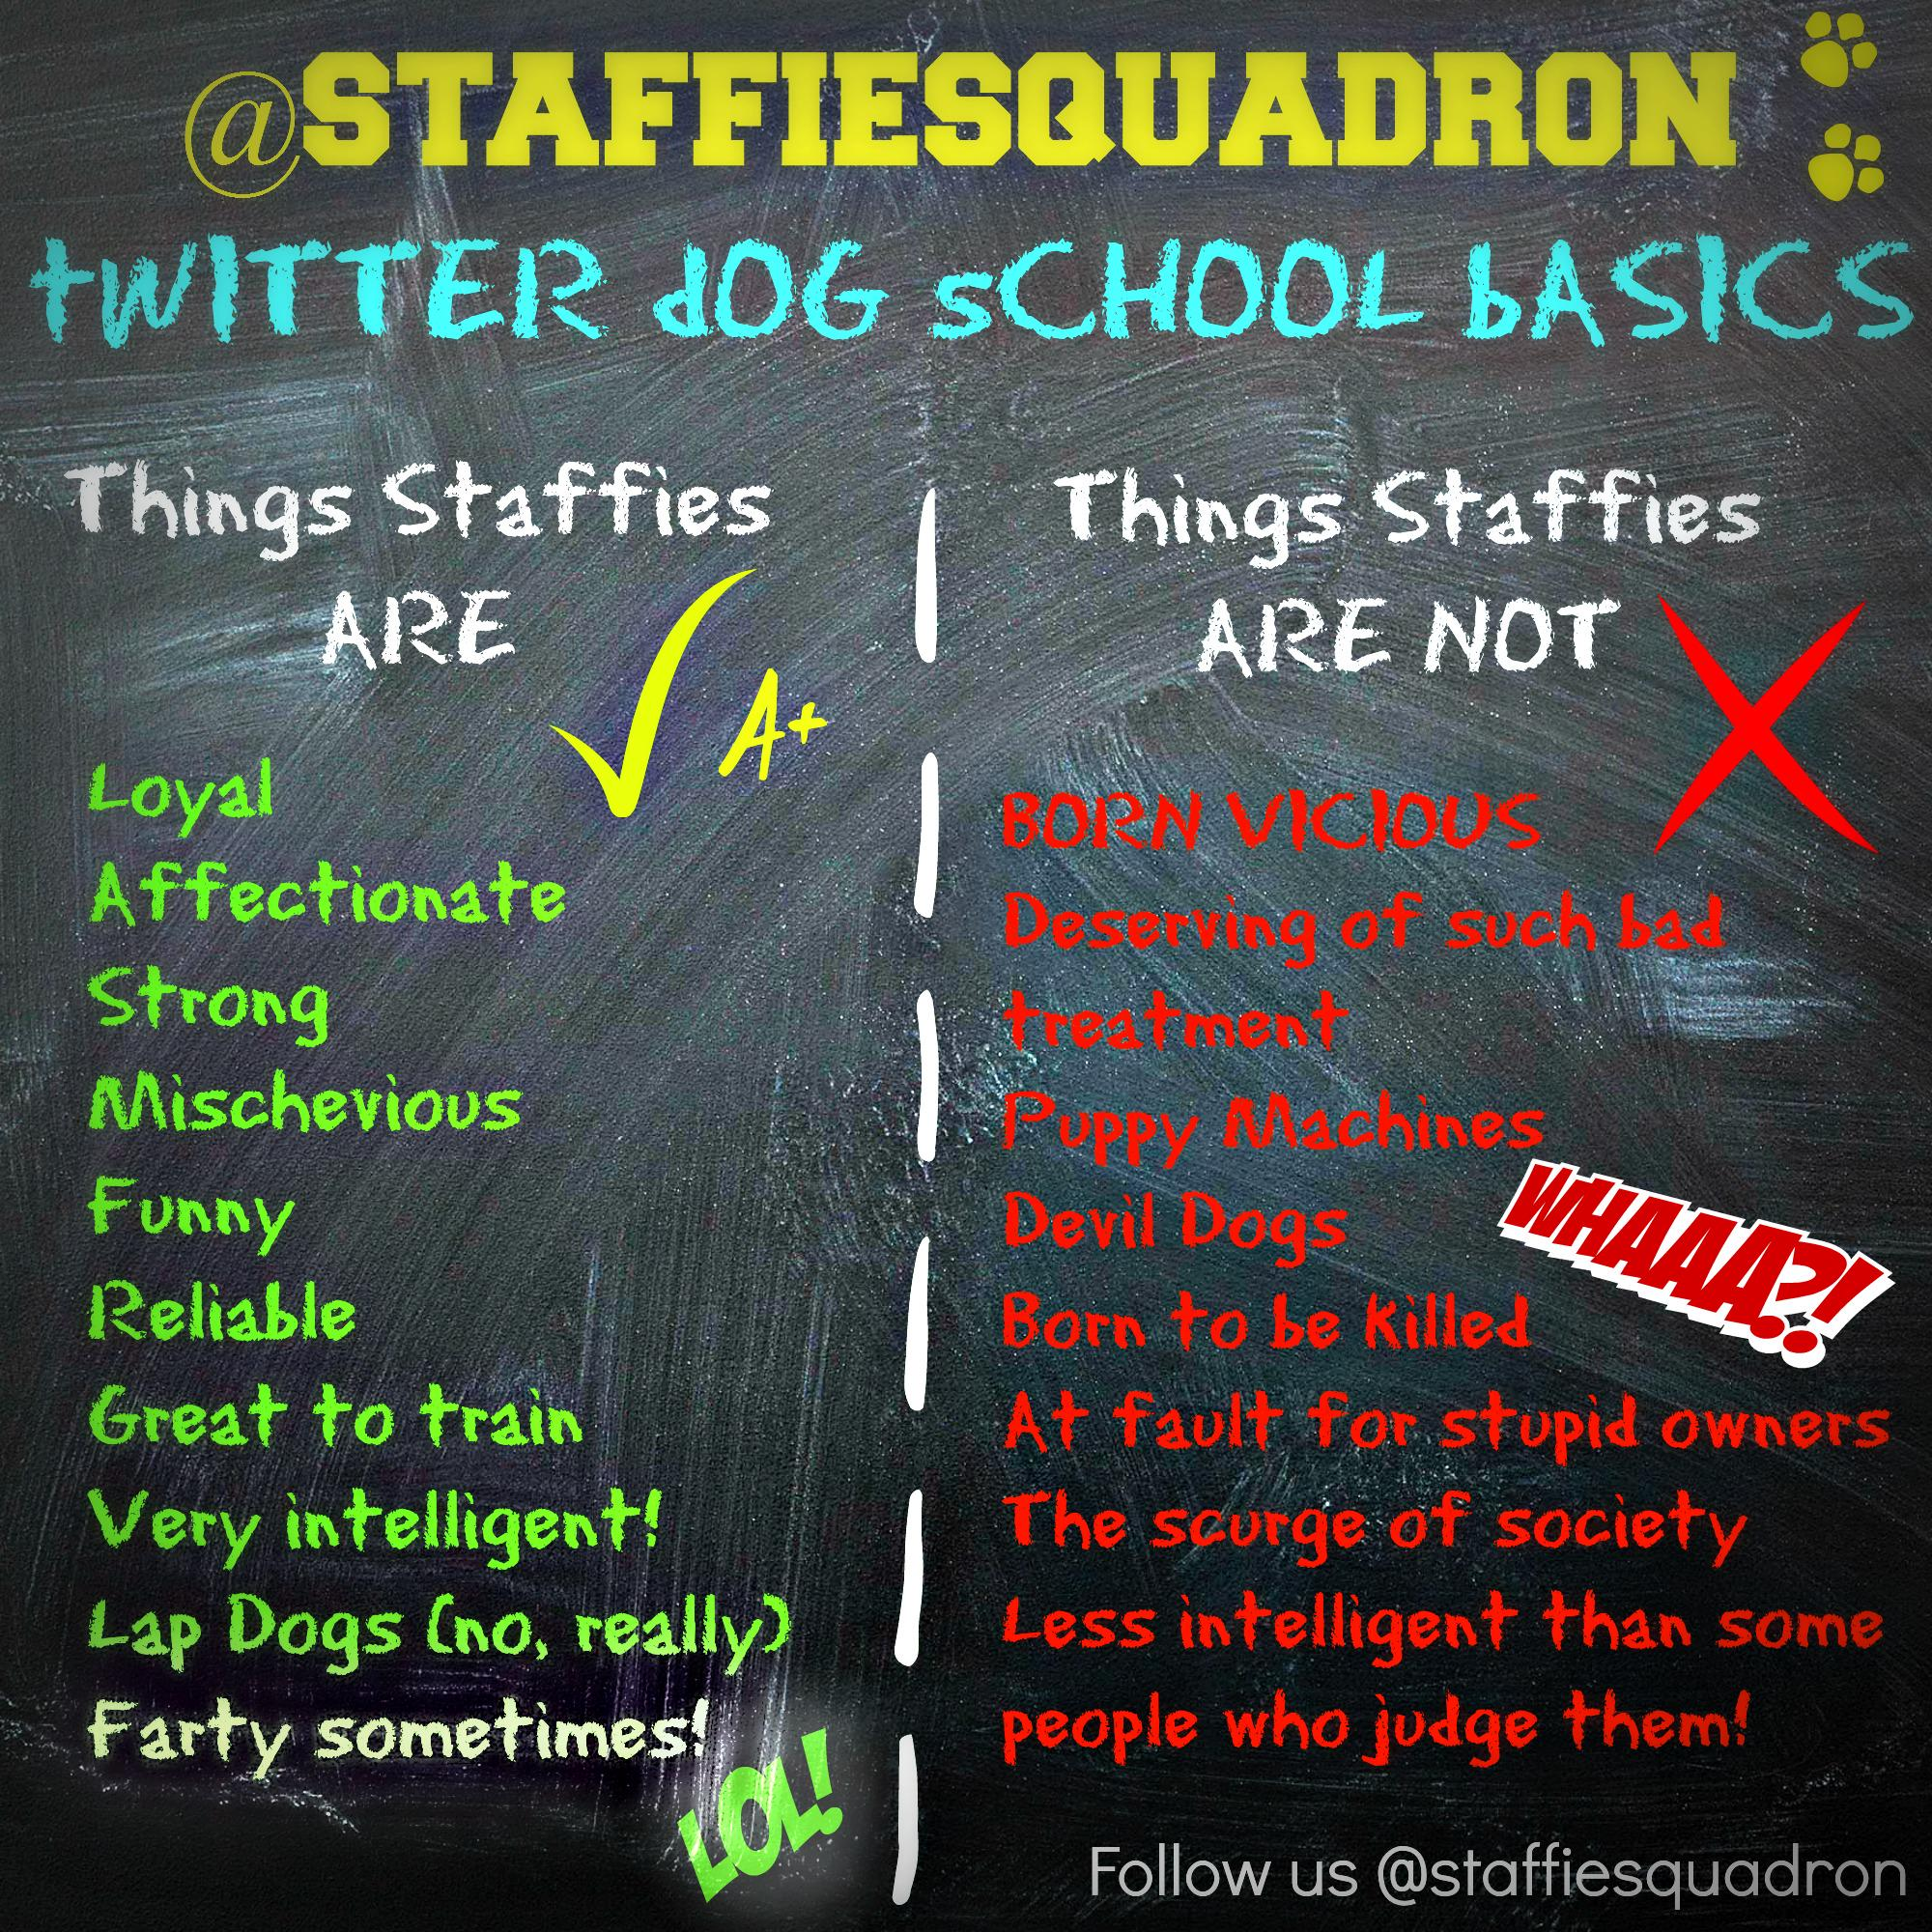 PLS RT: The BASIC GUIDE TO STAFFIES ;) #EndBSL #Anipal #Staffies #dogs #Staffy http://t.co/L8MUuZSBDI